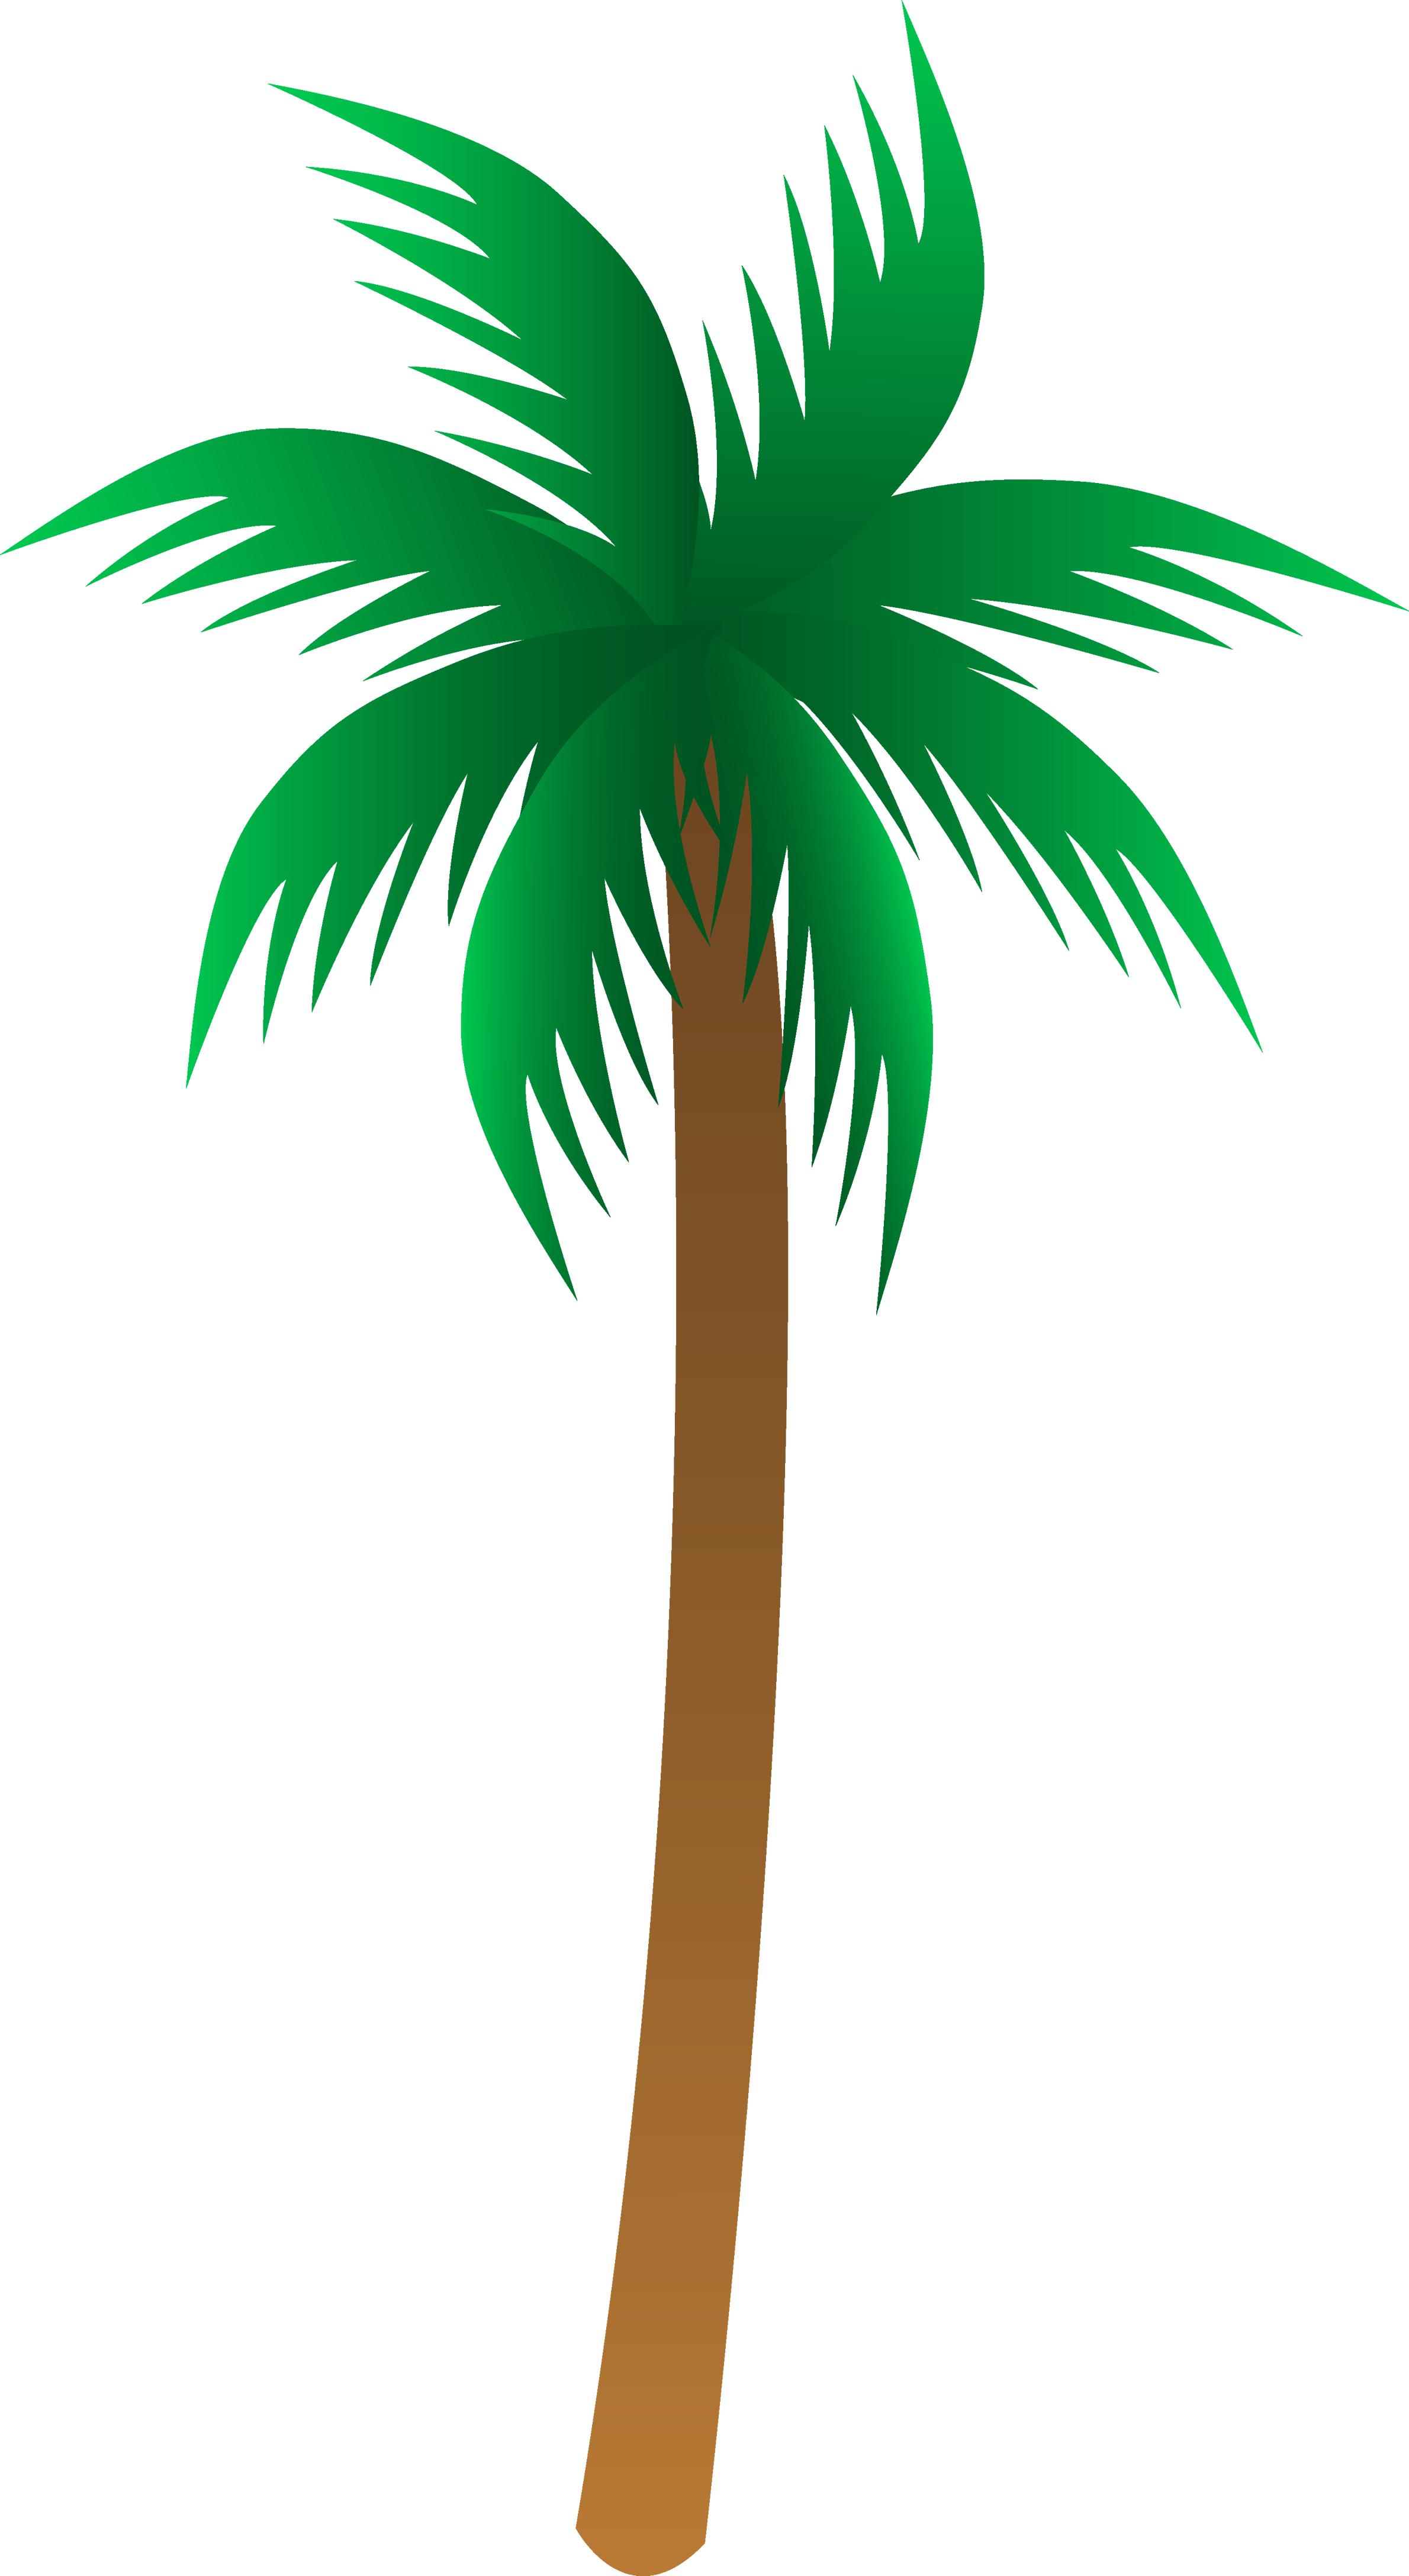 banana tree drawing png - photo #21